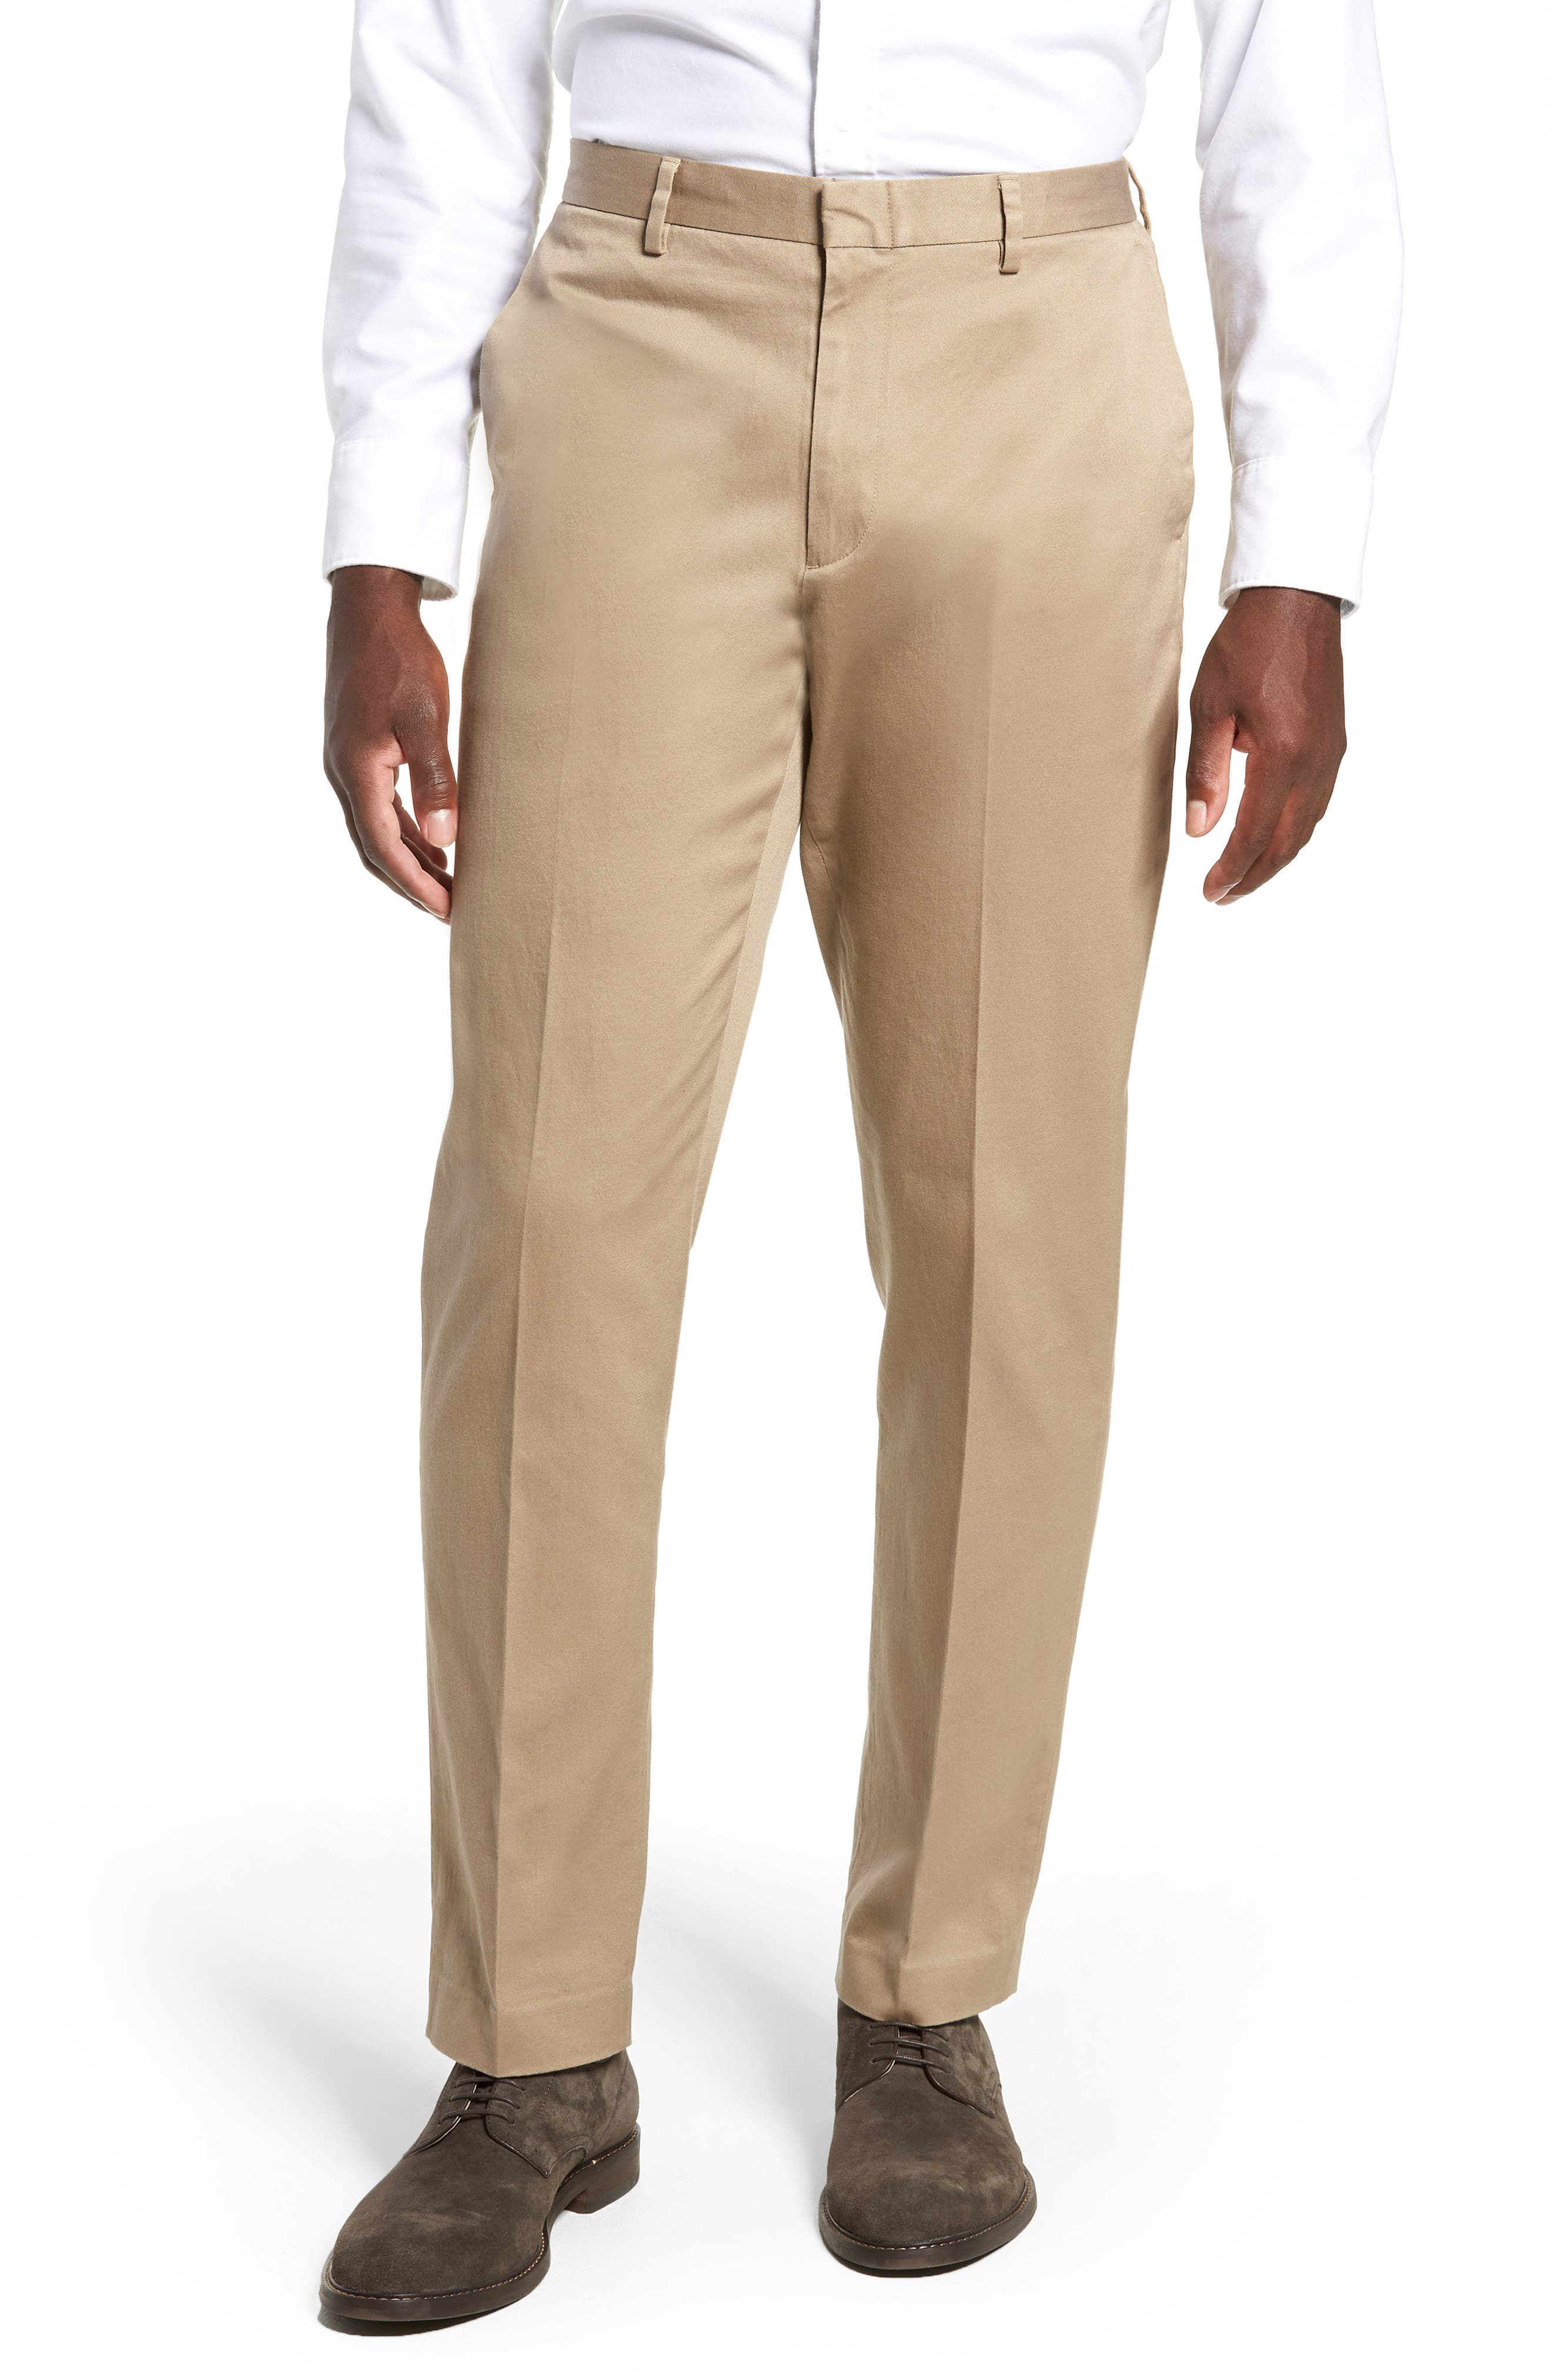 Ludlow Stretch Chino Pants,                             Main thumbnail 1, color,                             250